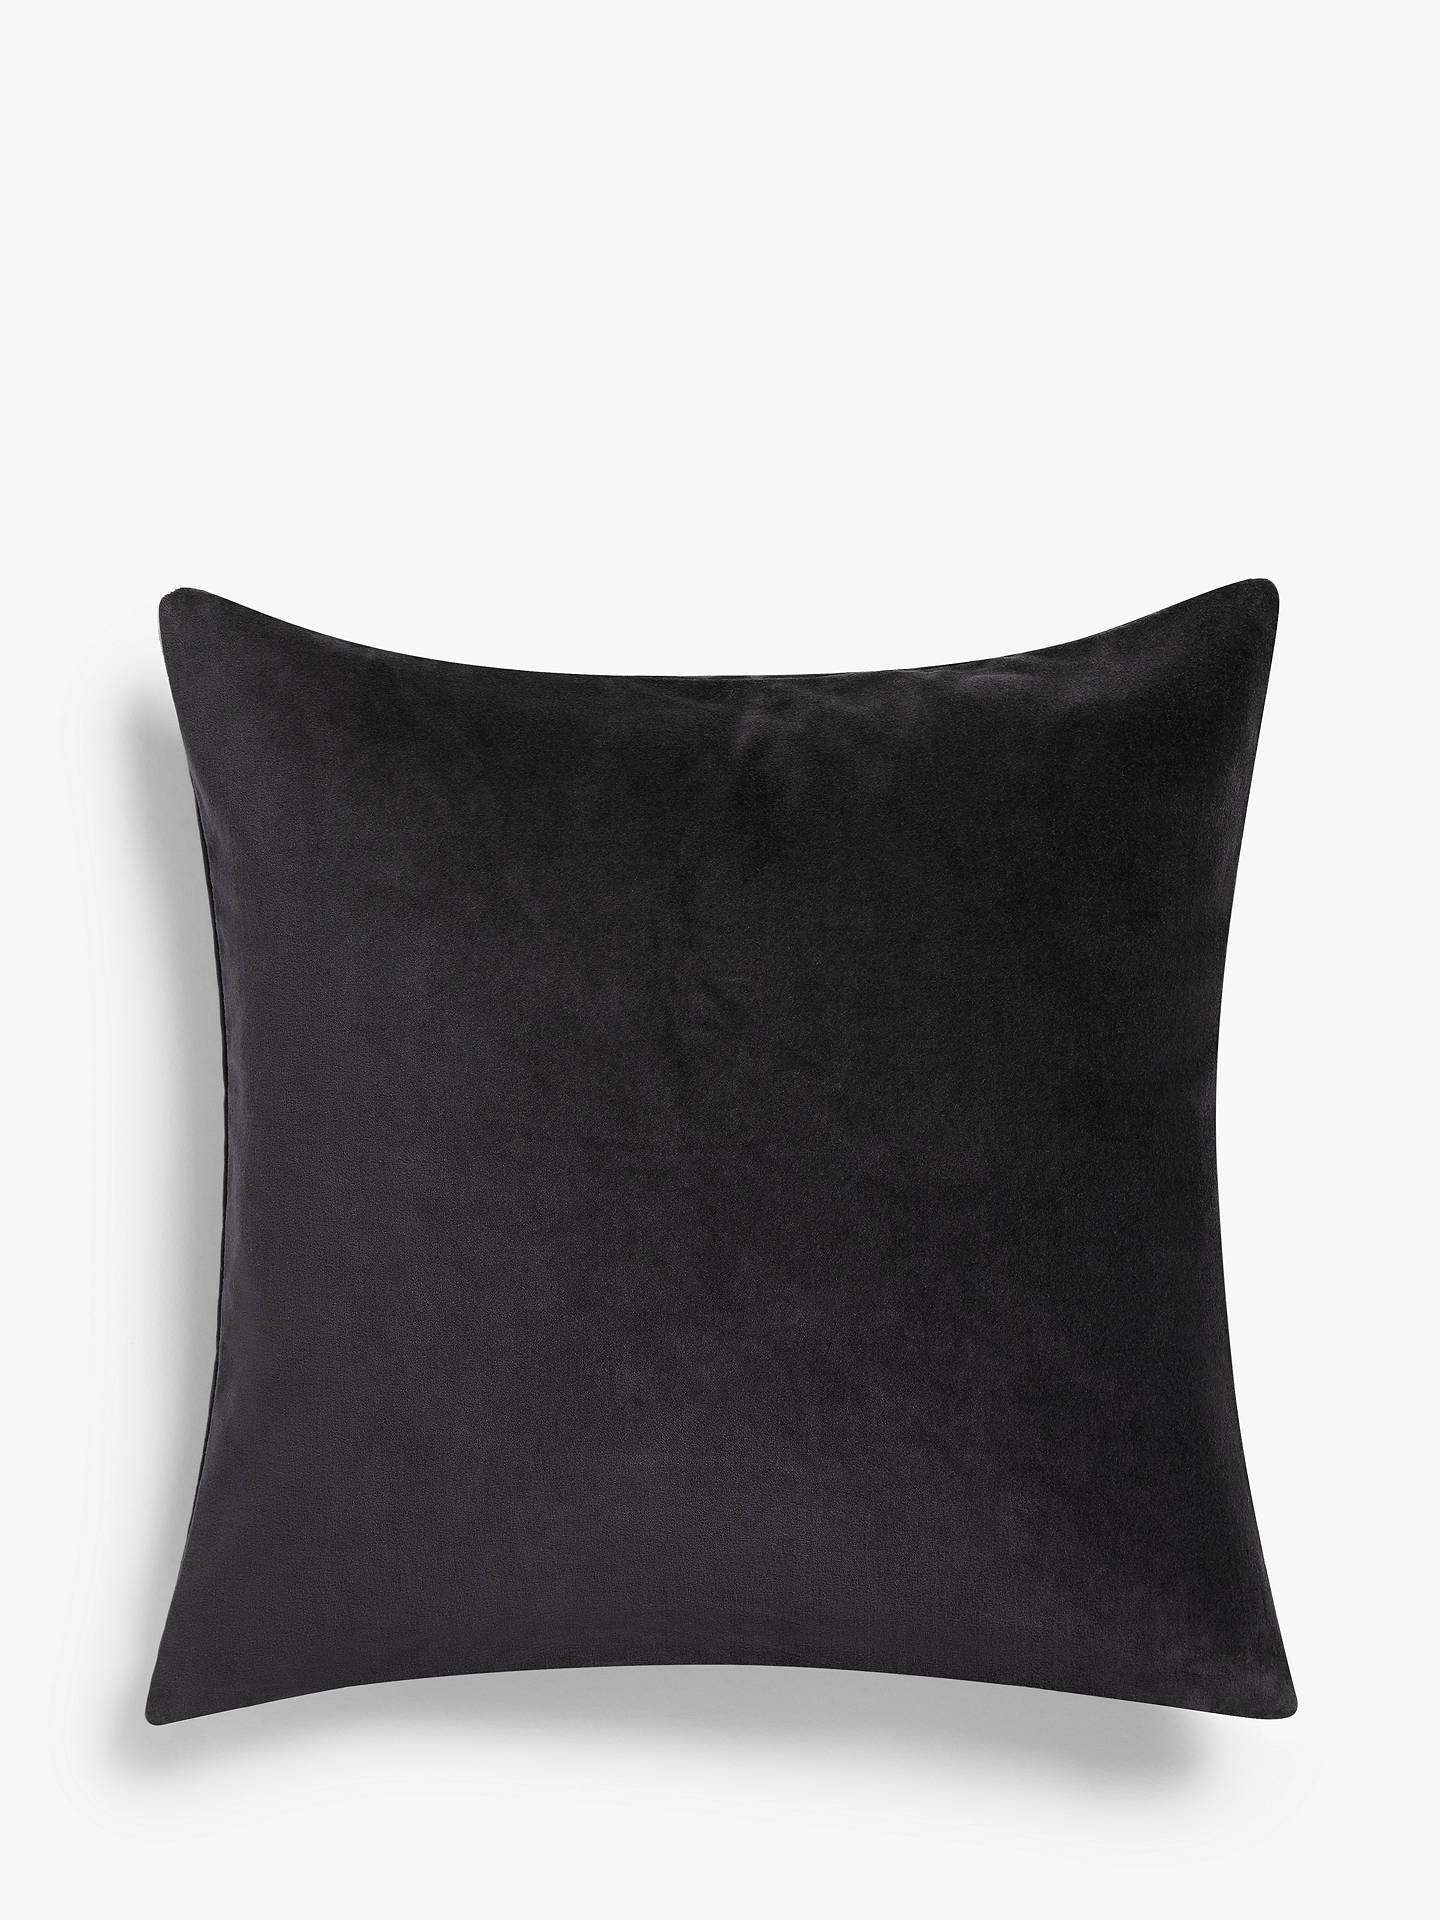 Buy John Lewis & Partners Cotton Velvet Cushion, Graphite Online at johnlewis.com